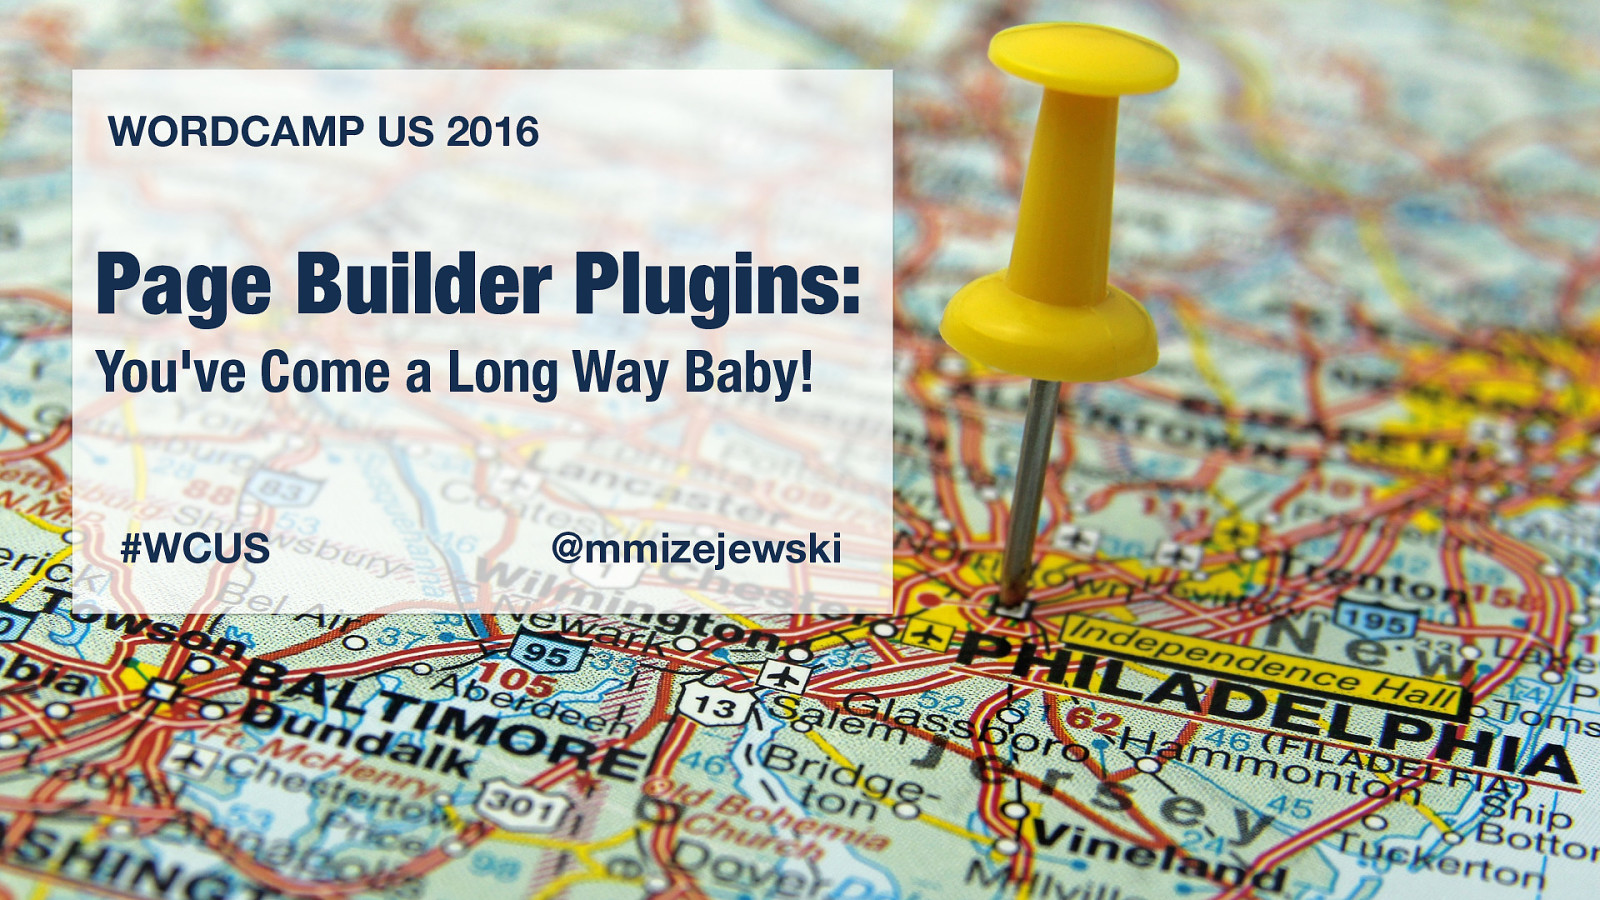 Pagebuilder Plugins: You've Come a Long Way Baby!